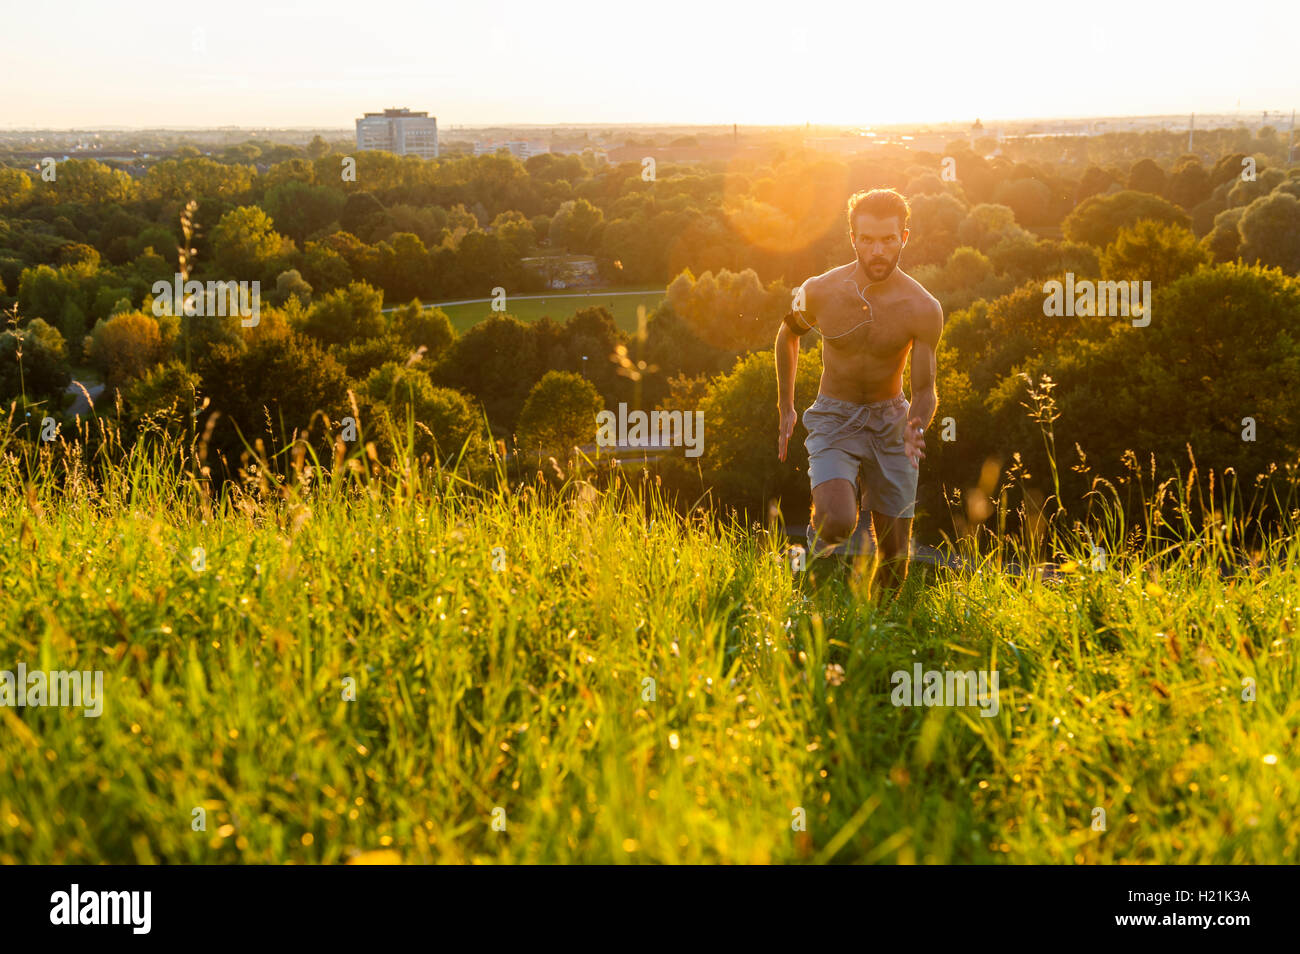 Barechested man running on meadow in park at sunset - Stock Image